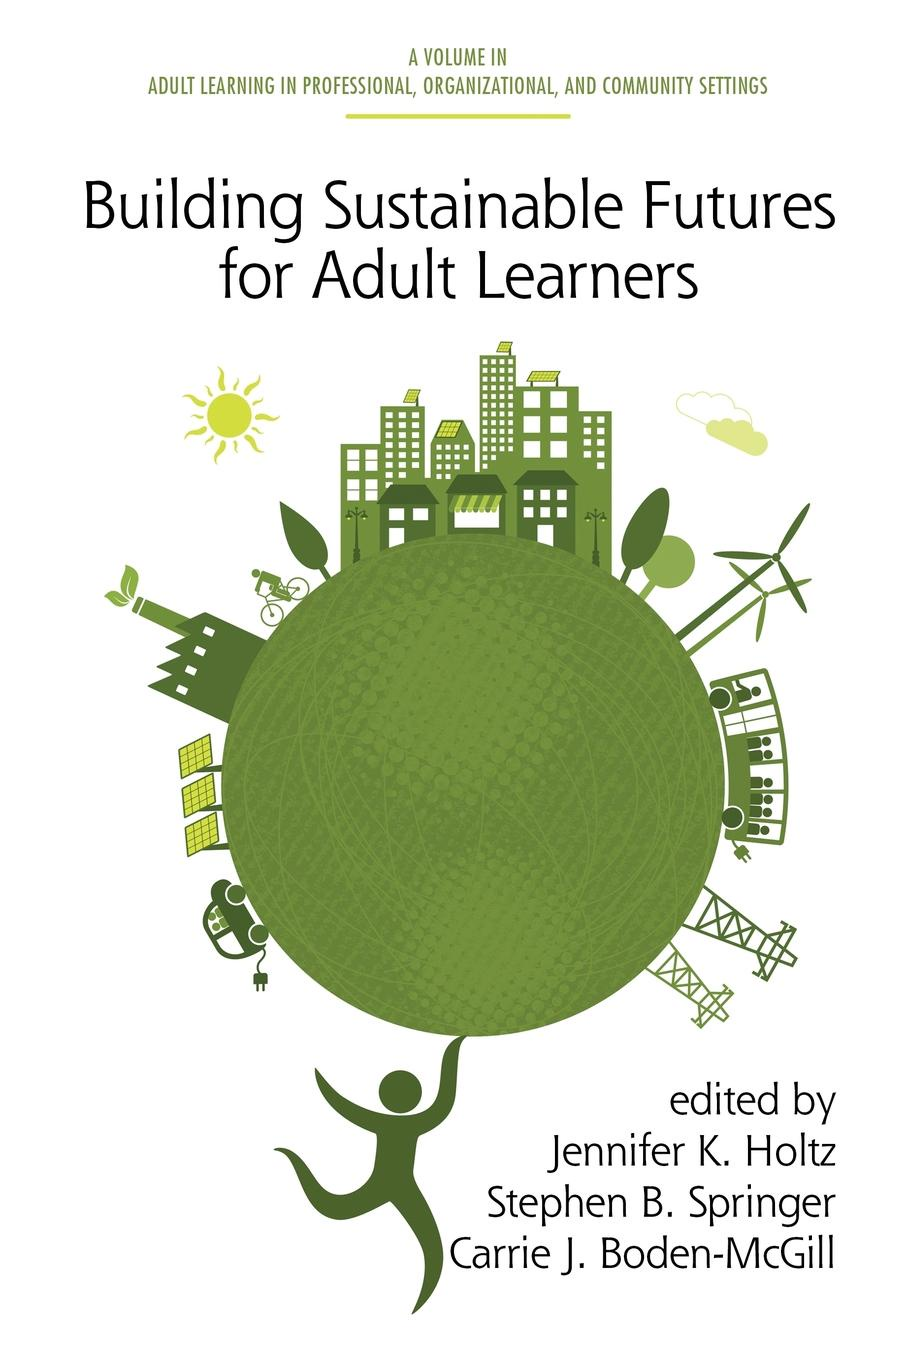 Building Sustainable Futures for Adult Learners cooper rachel constructing futures industry leaders and futures thinking in construction isbn 9781444327847